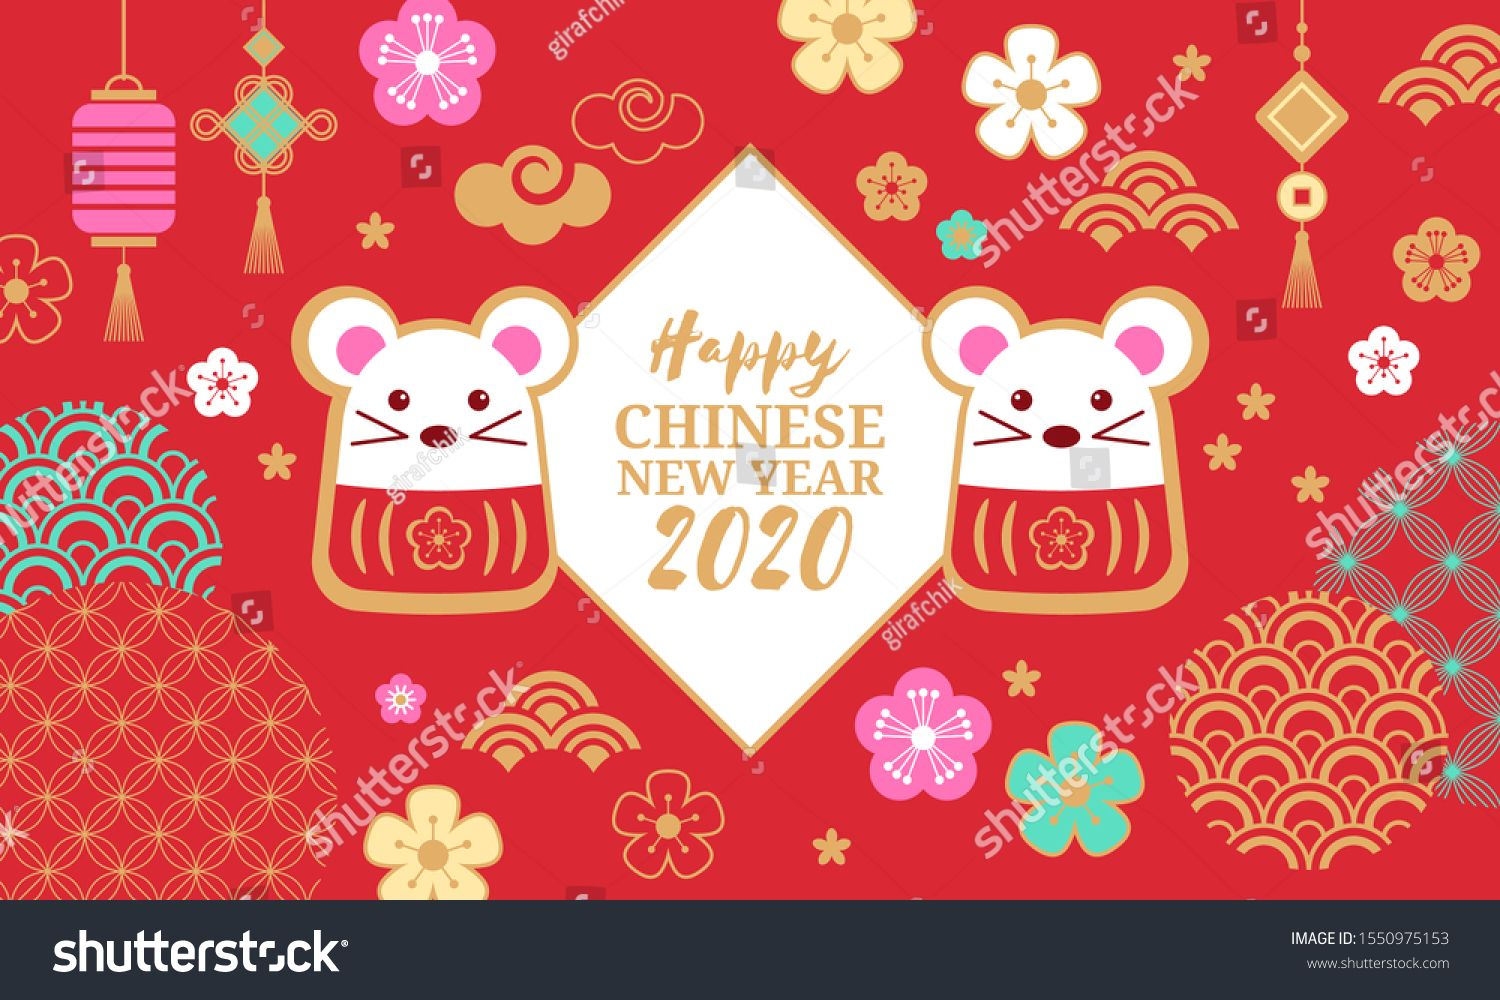 Chinese New Year Holiday Banner Design Happy New Year Of The Rat 2020 Vector Illustration Ad Chinese New Year Holiday Holiday Banner Chinese New Year Design